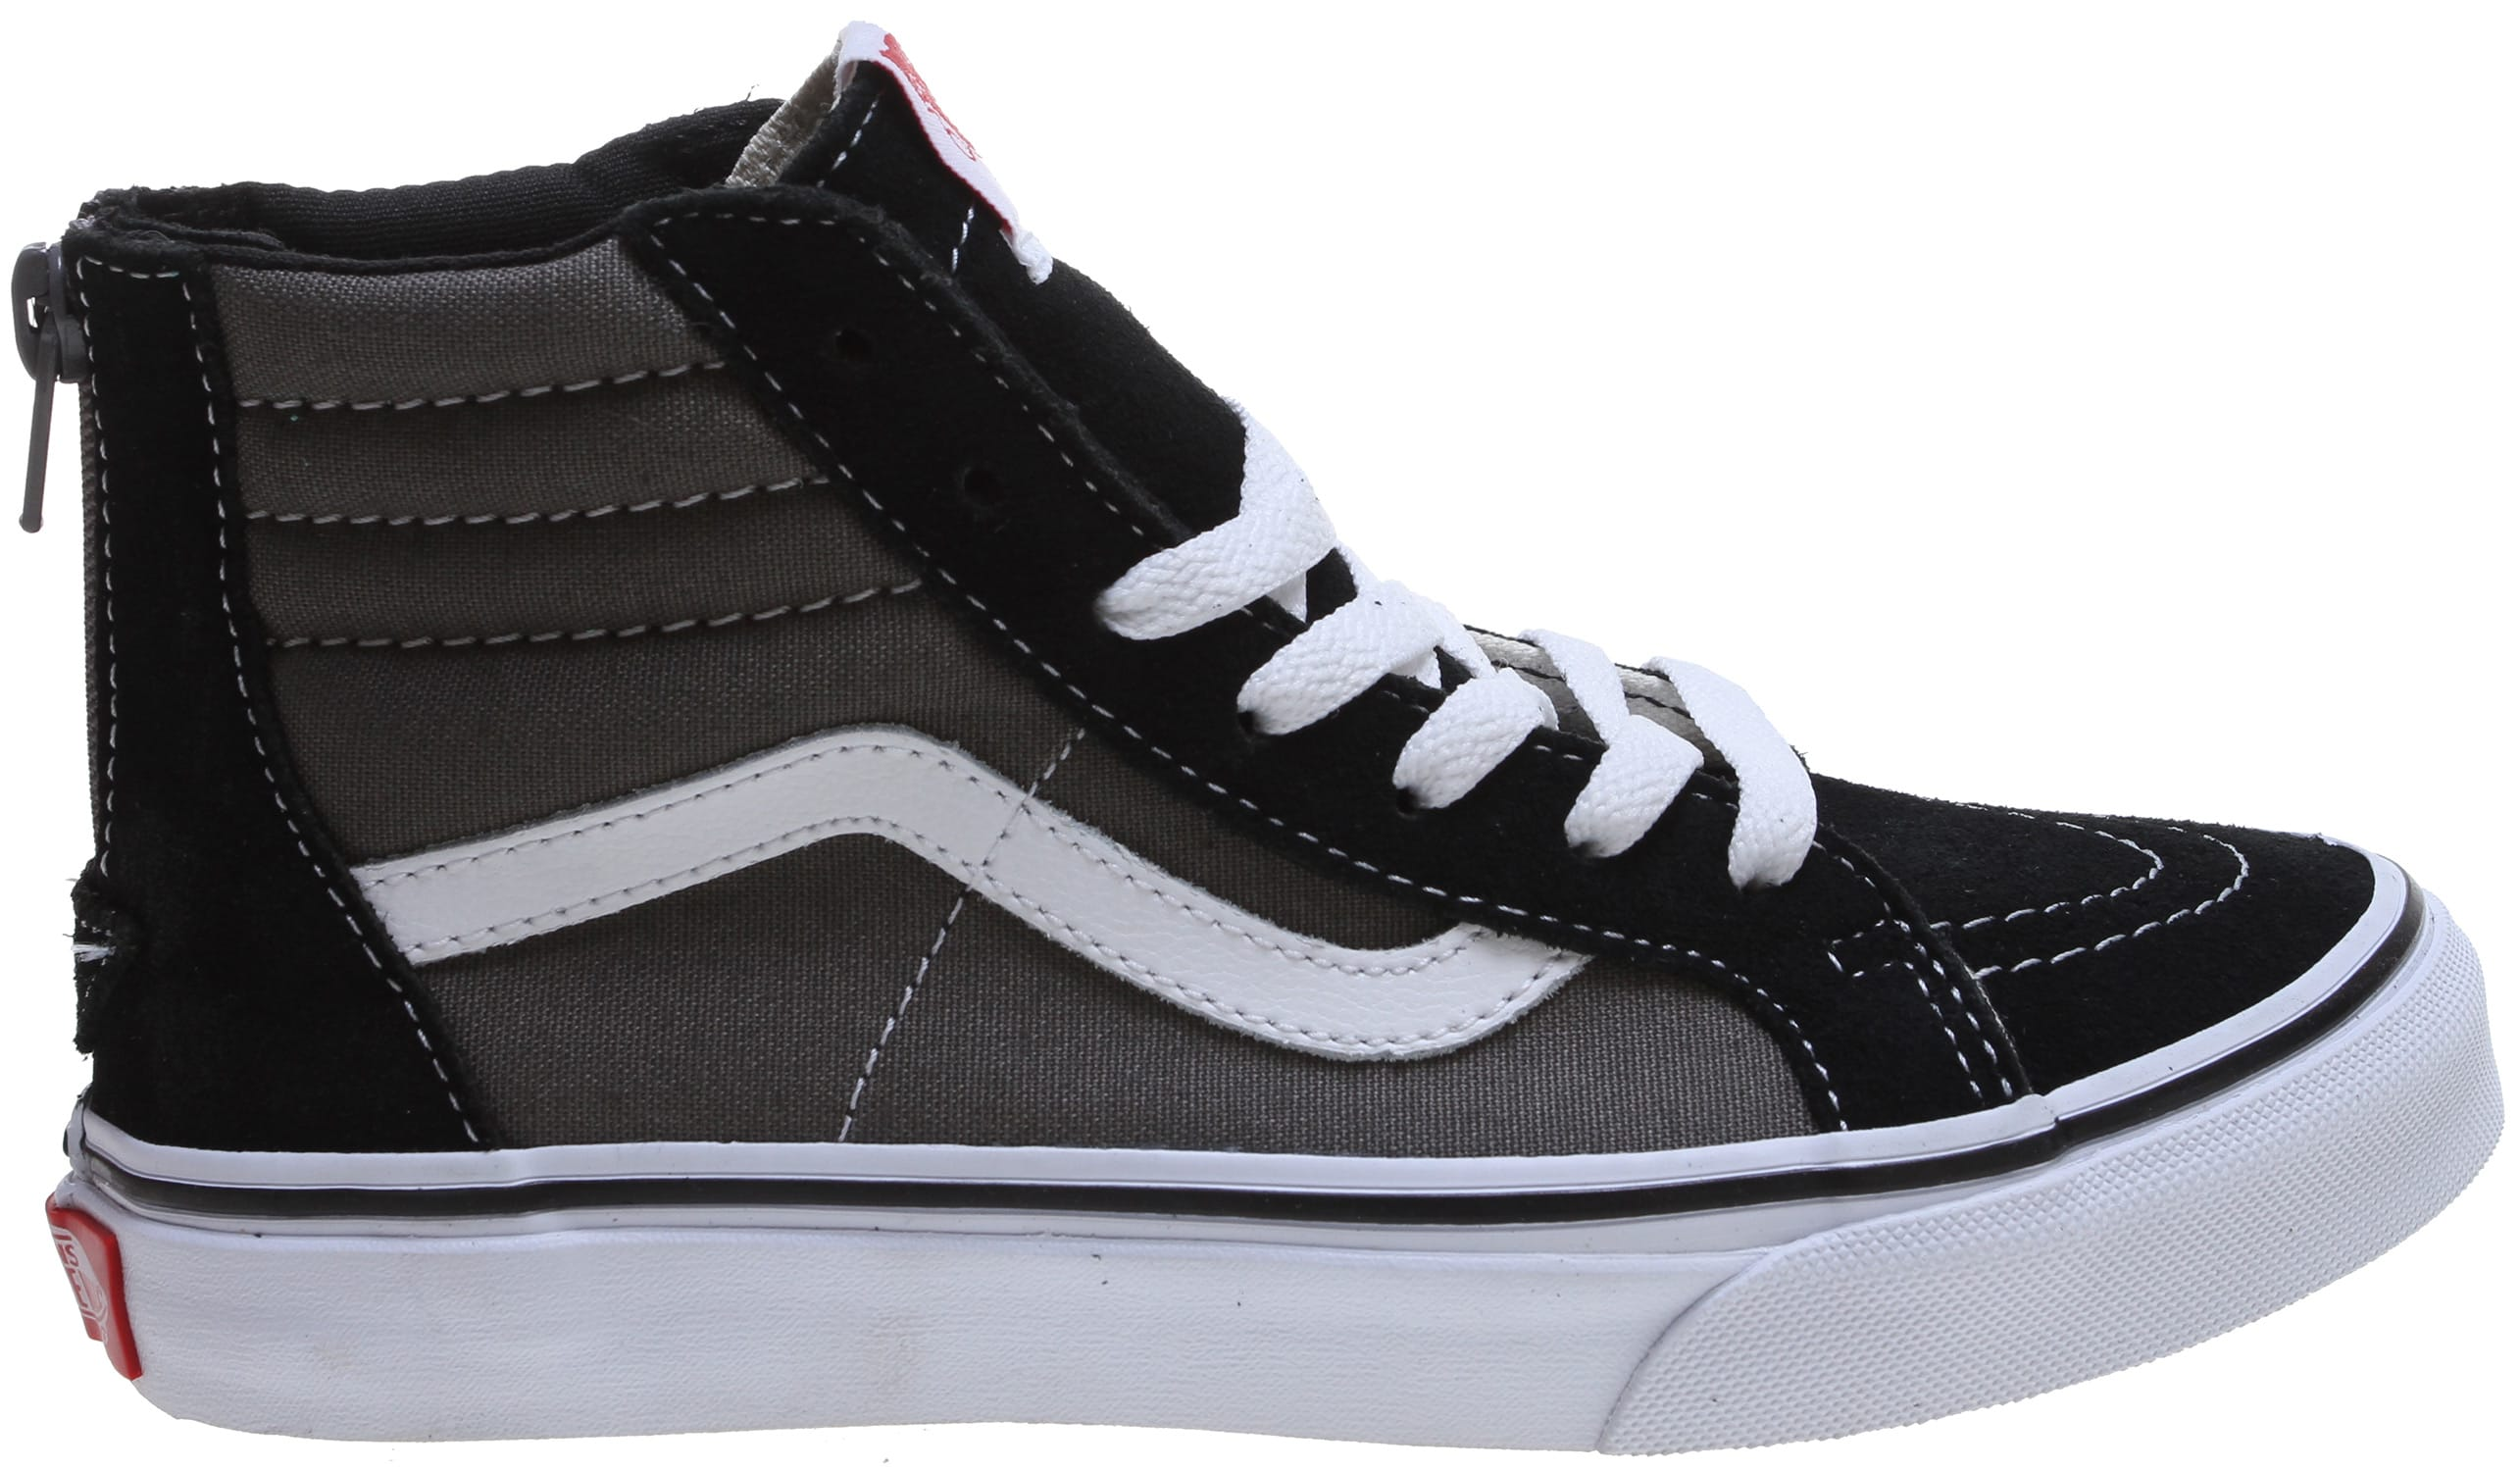 Discount Vans Skate Shoes